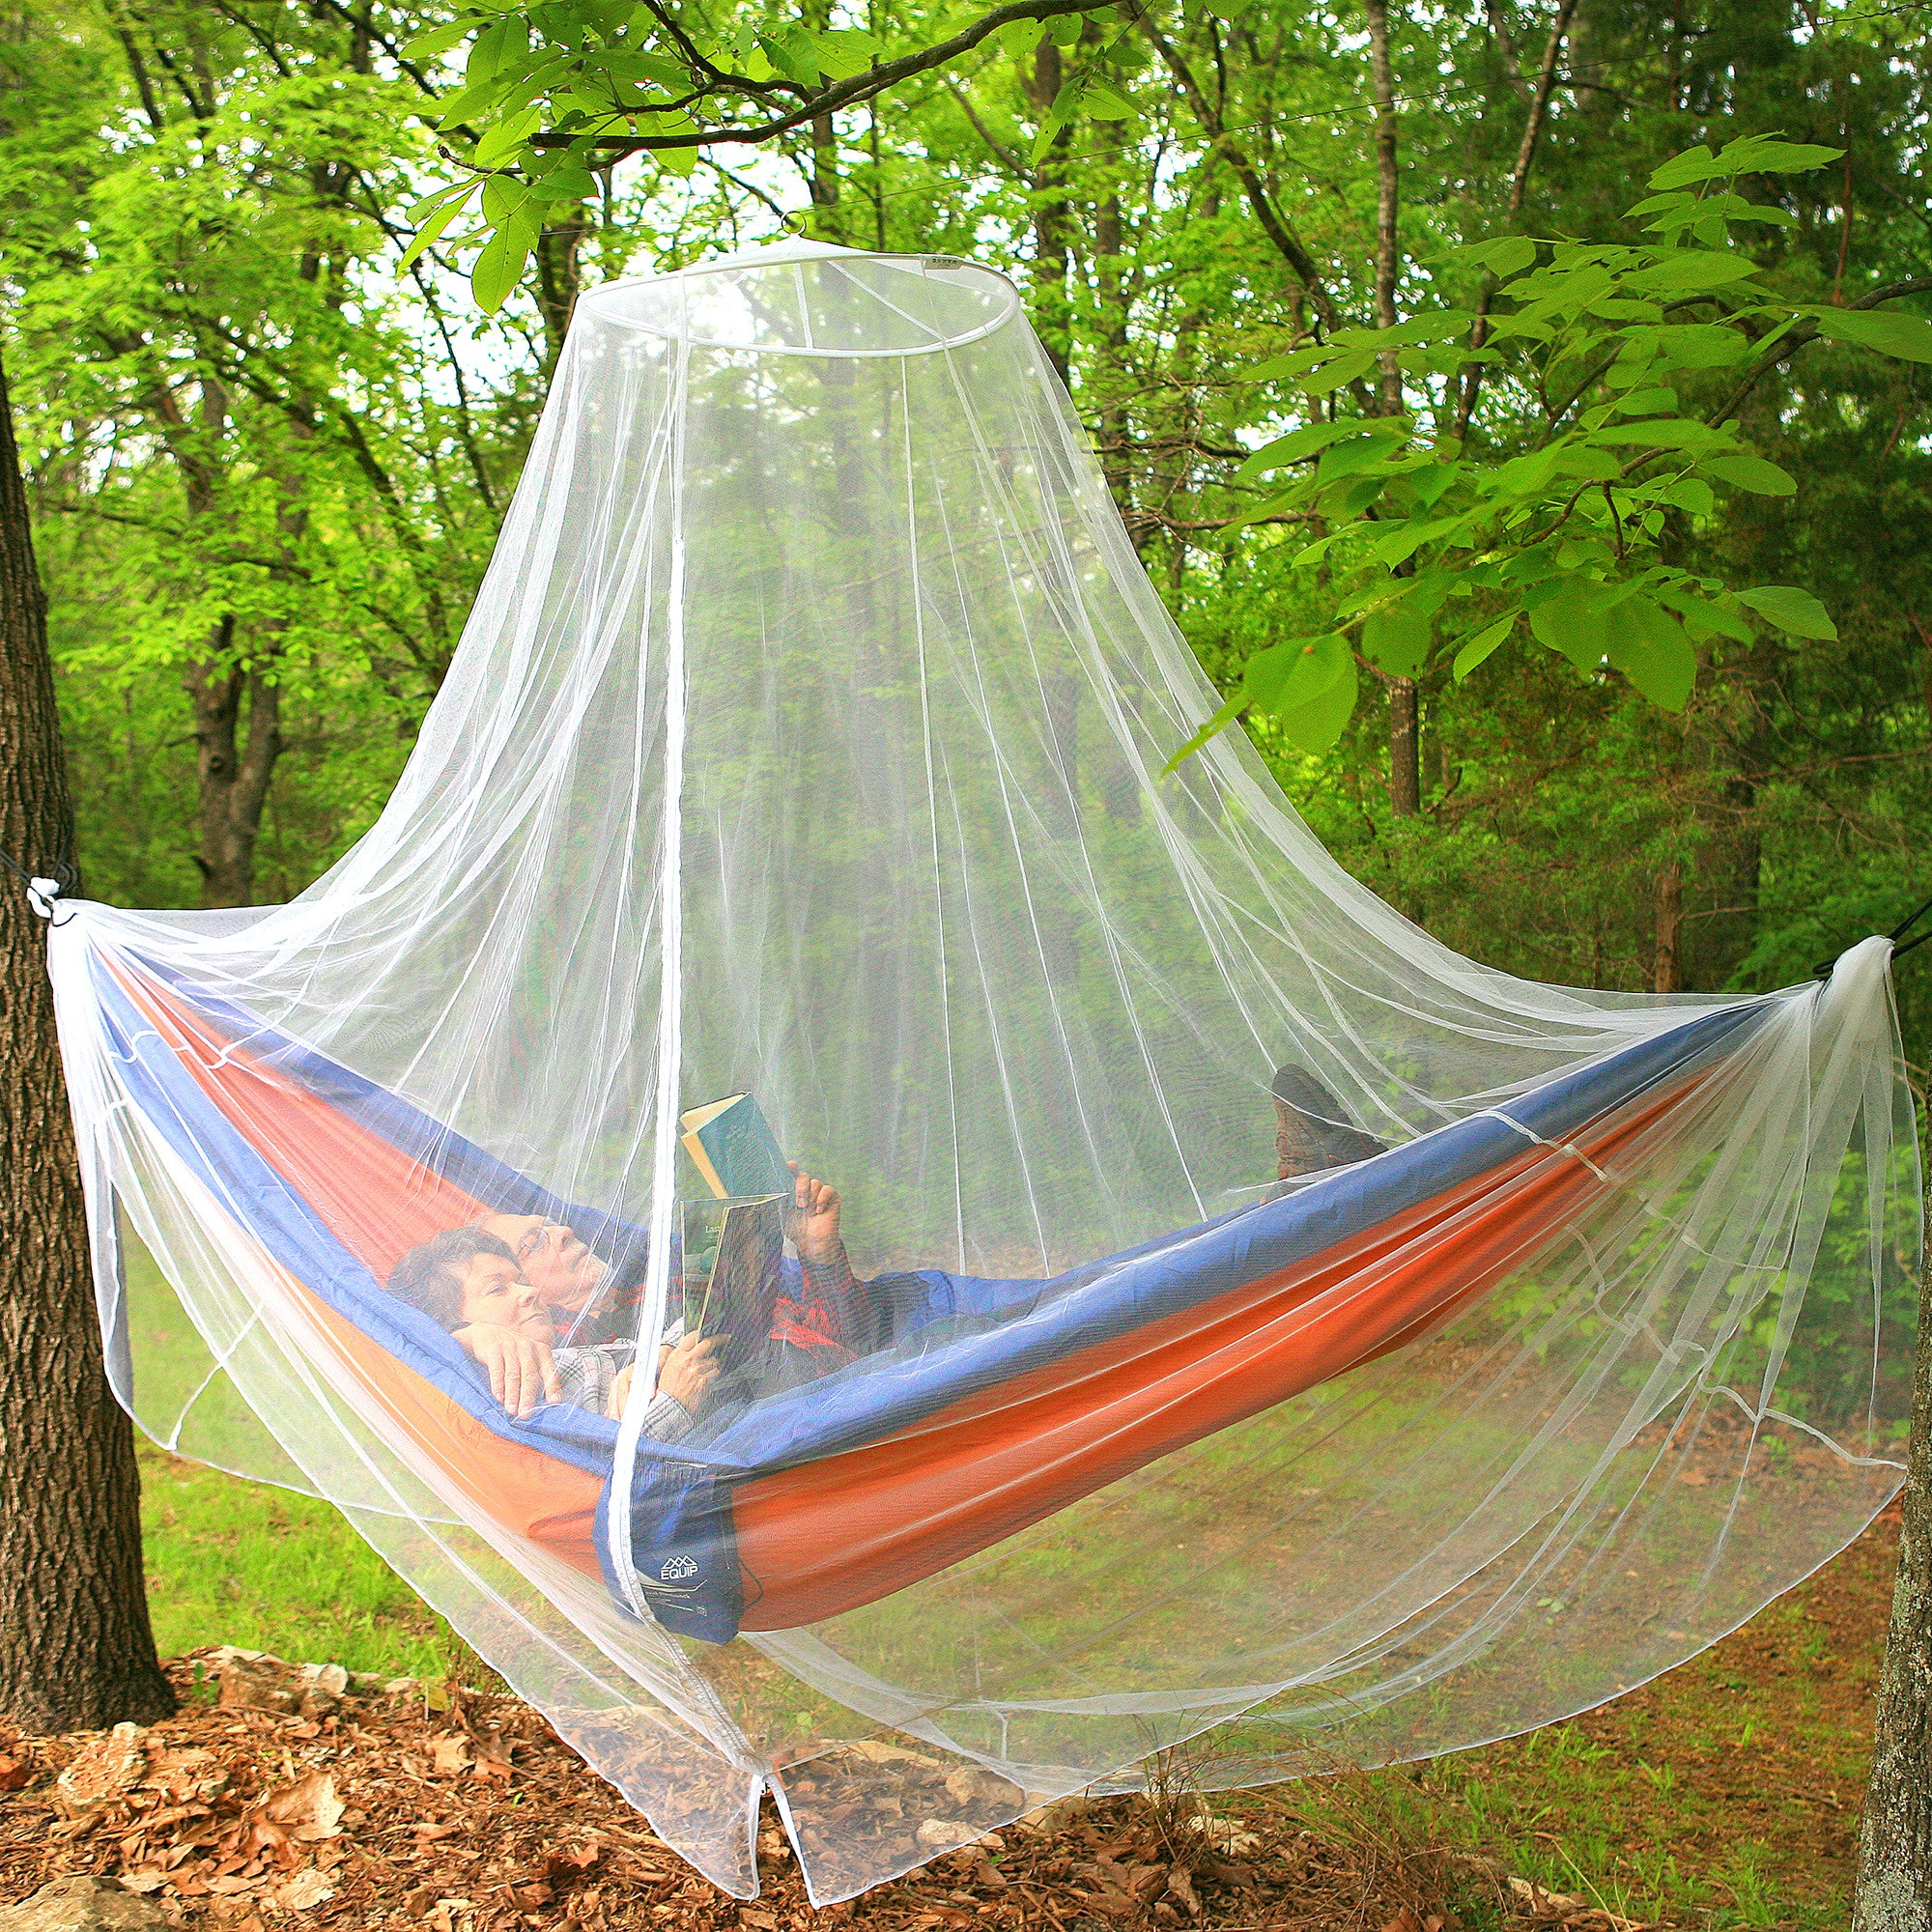 Bug Net Keeps Away Insects Flies /& Mosquito Indoors /& Outdoors Canopies Netting